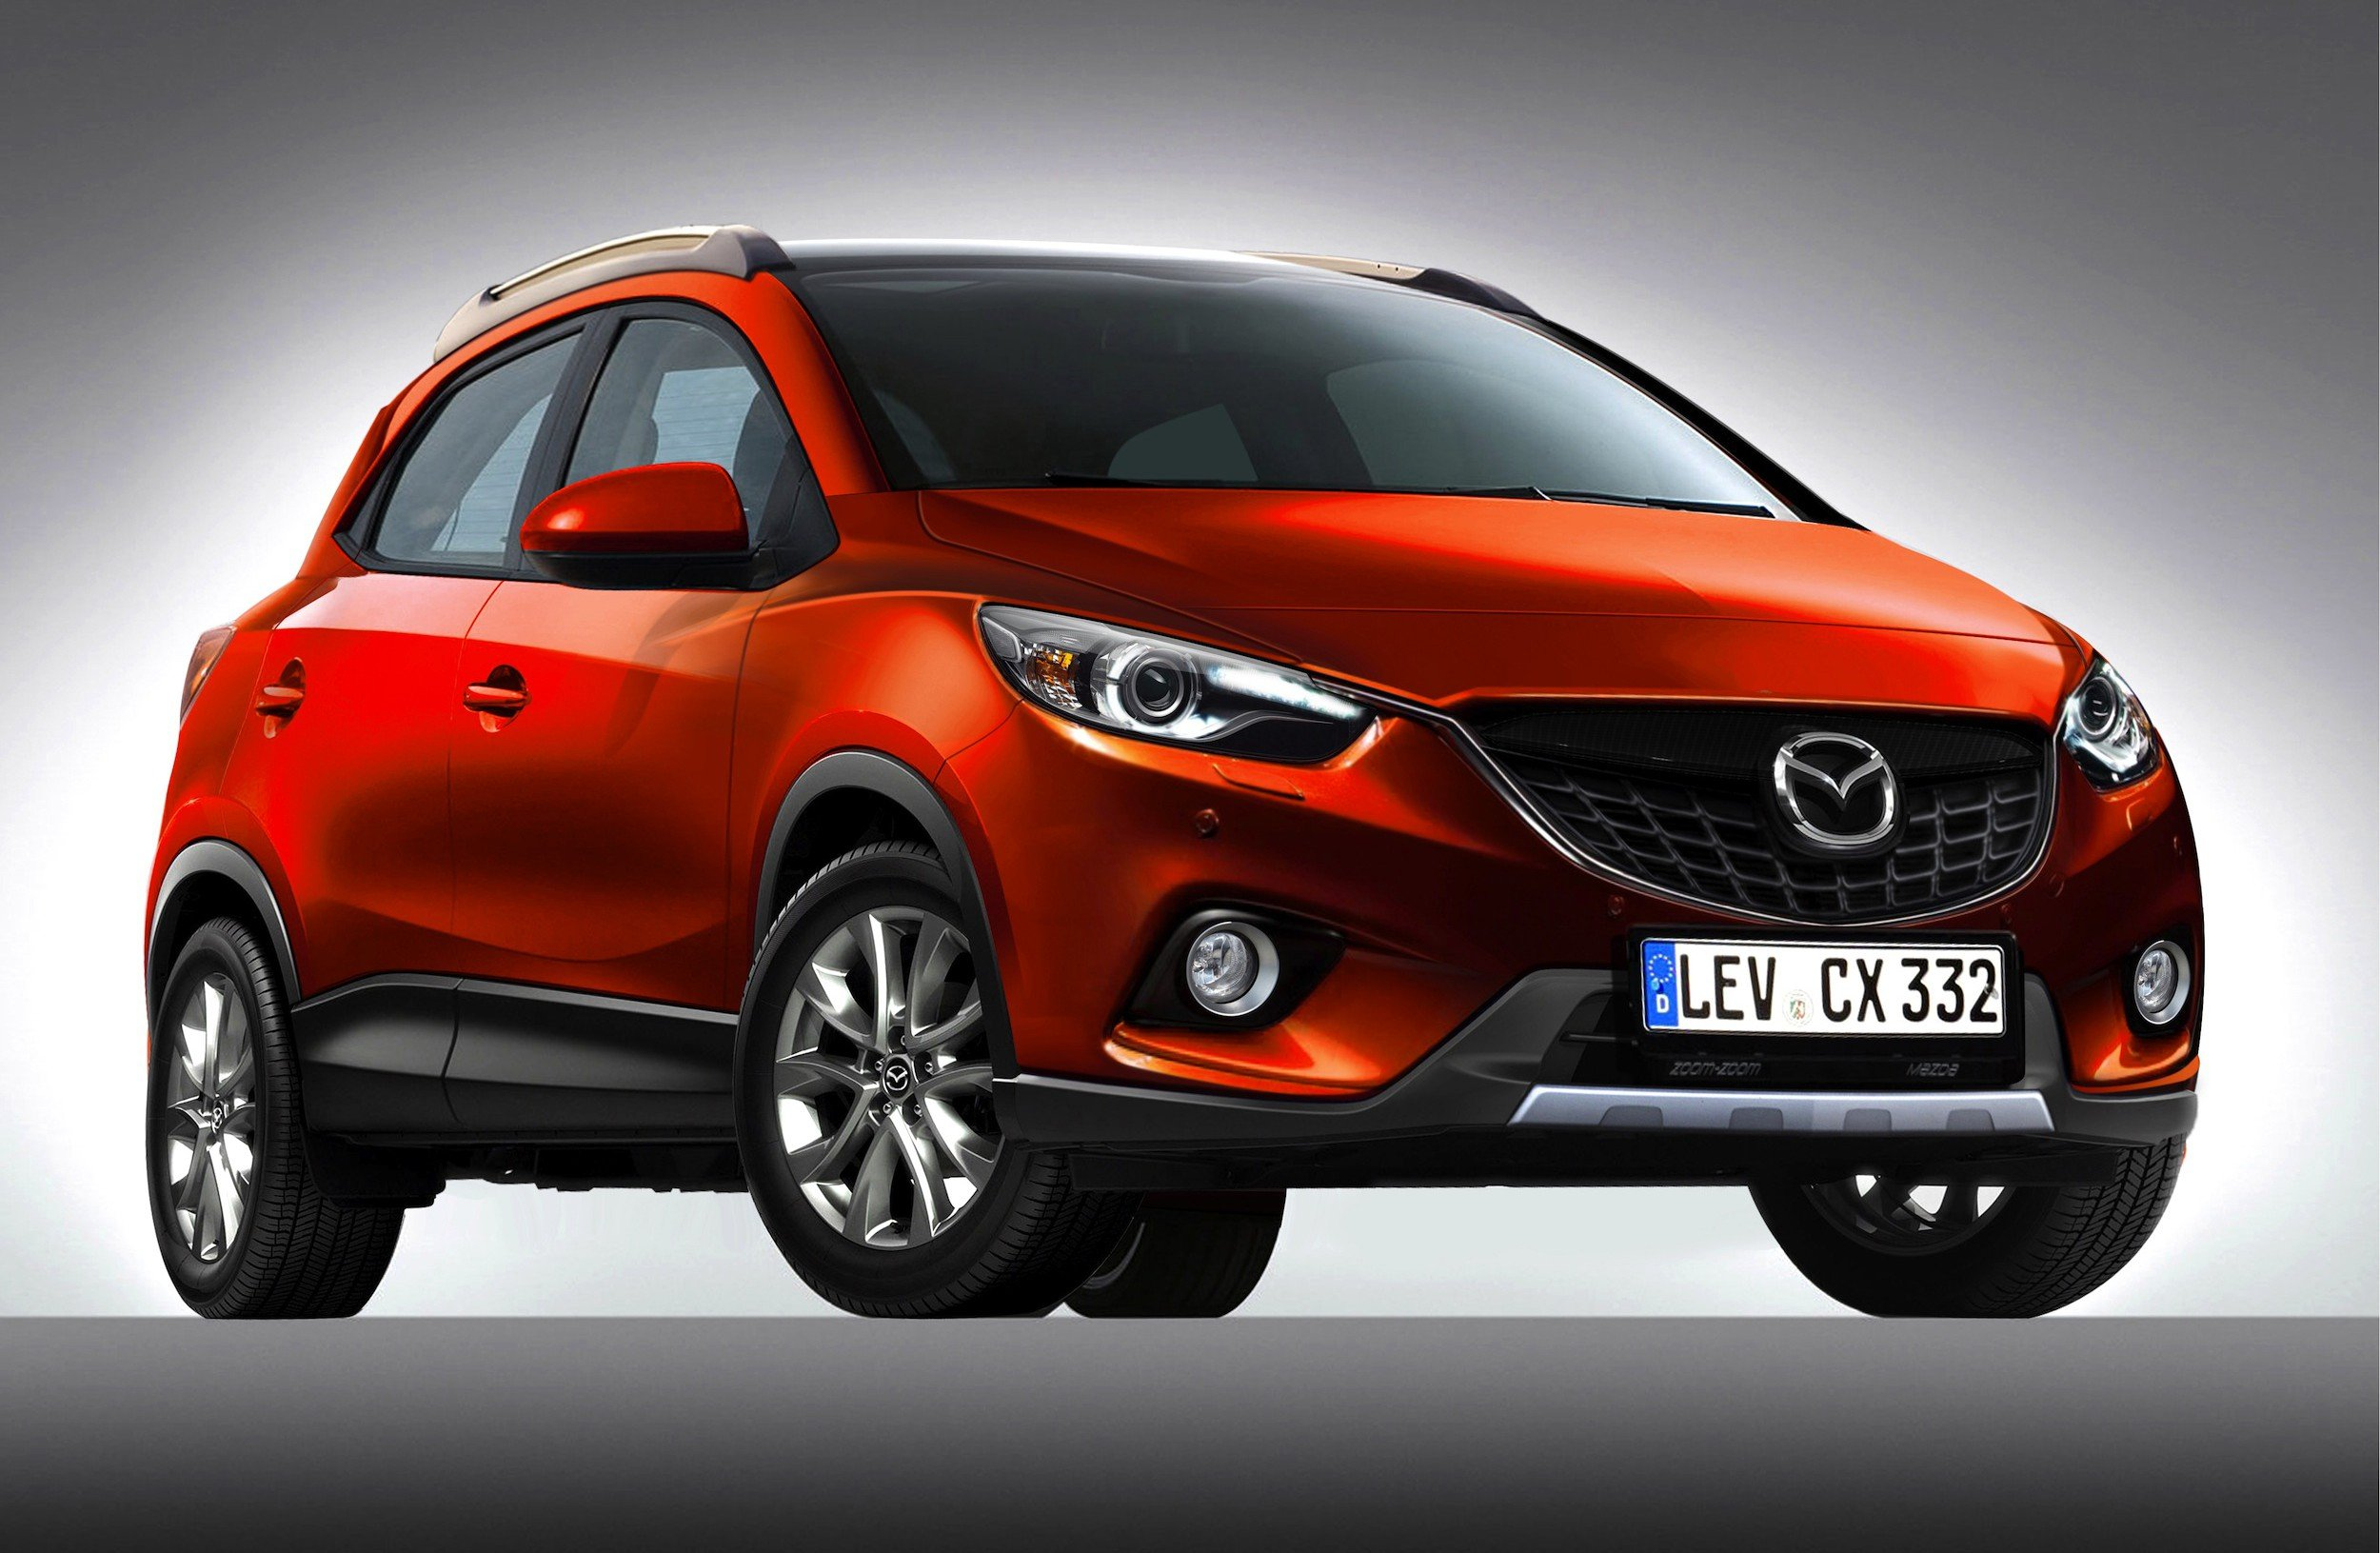 mazda cx 3 sub compact suv to debut by end of 2014 report photos 1 of 1. Black Bedroom Furniture Sets. Home Design Ideas